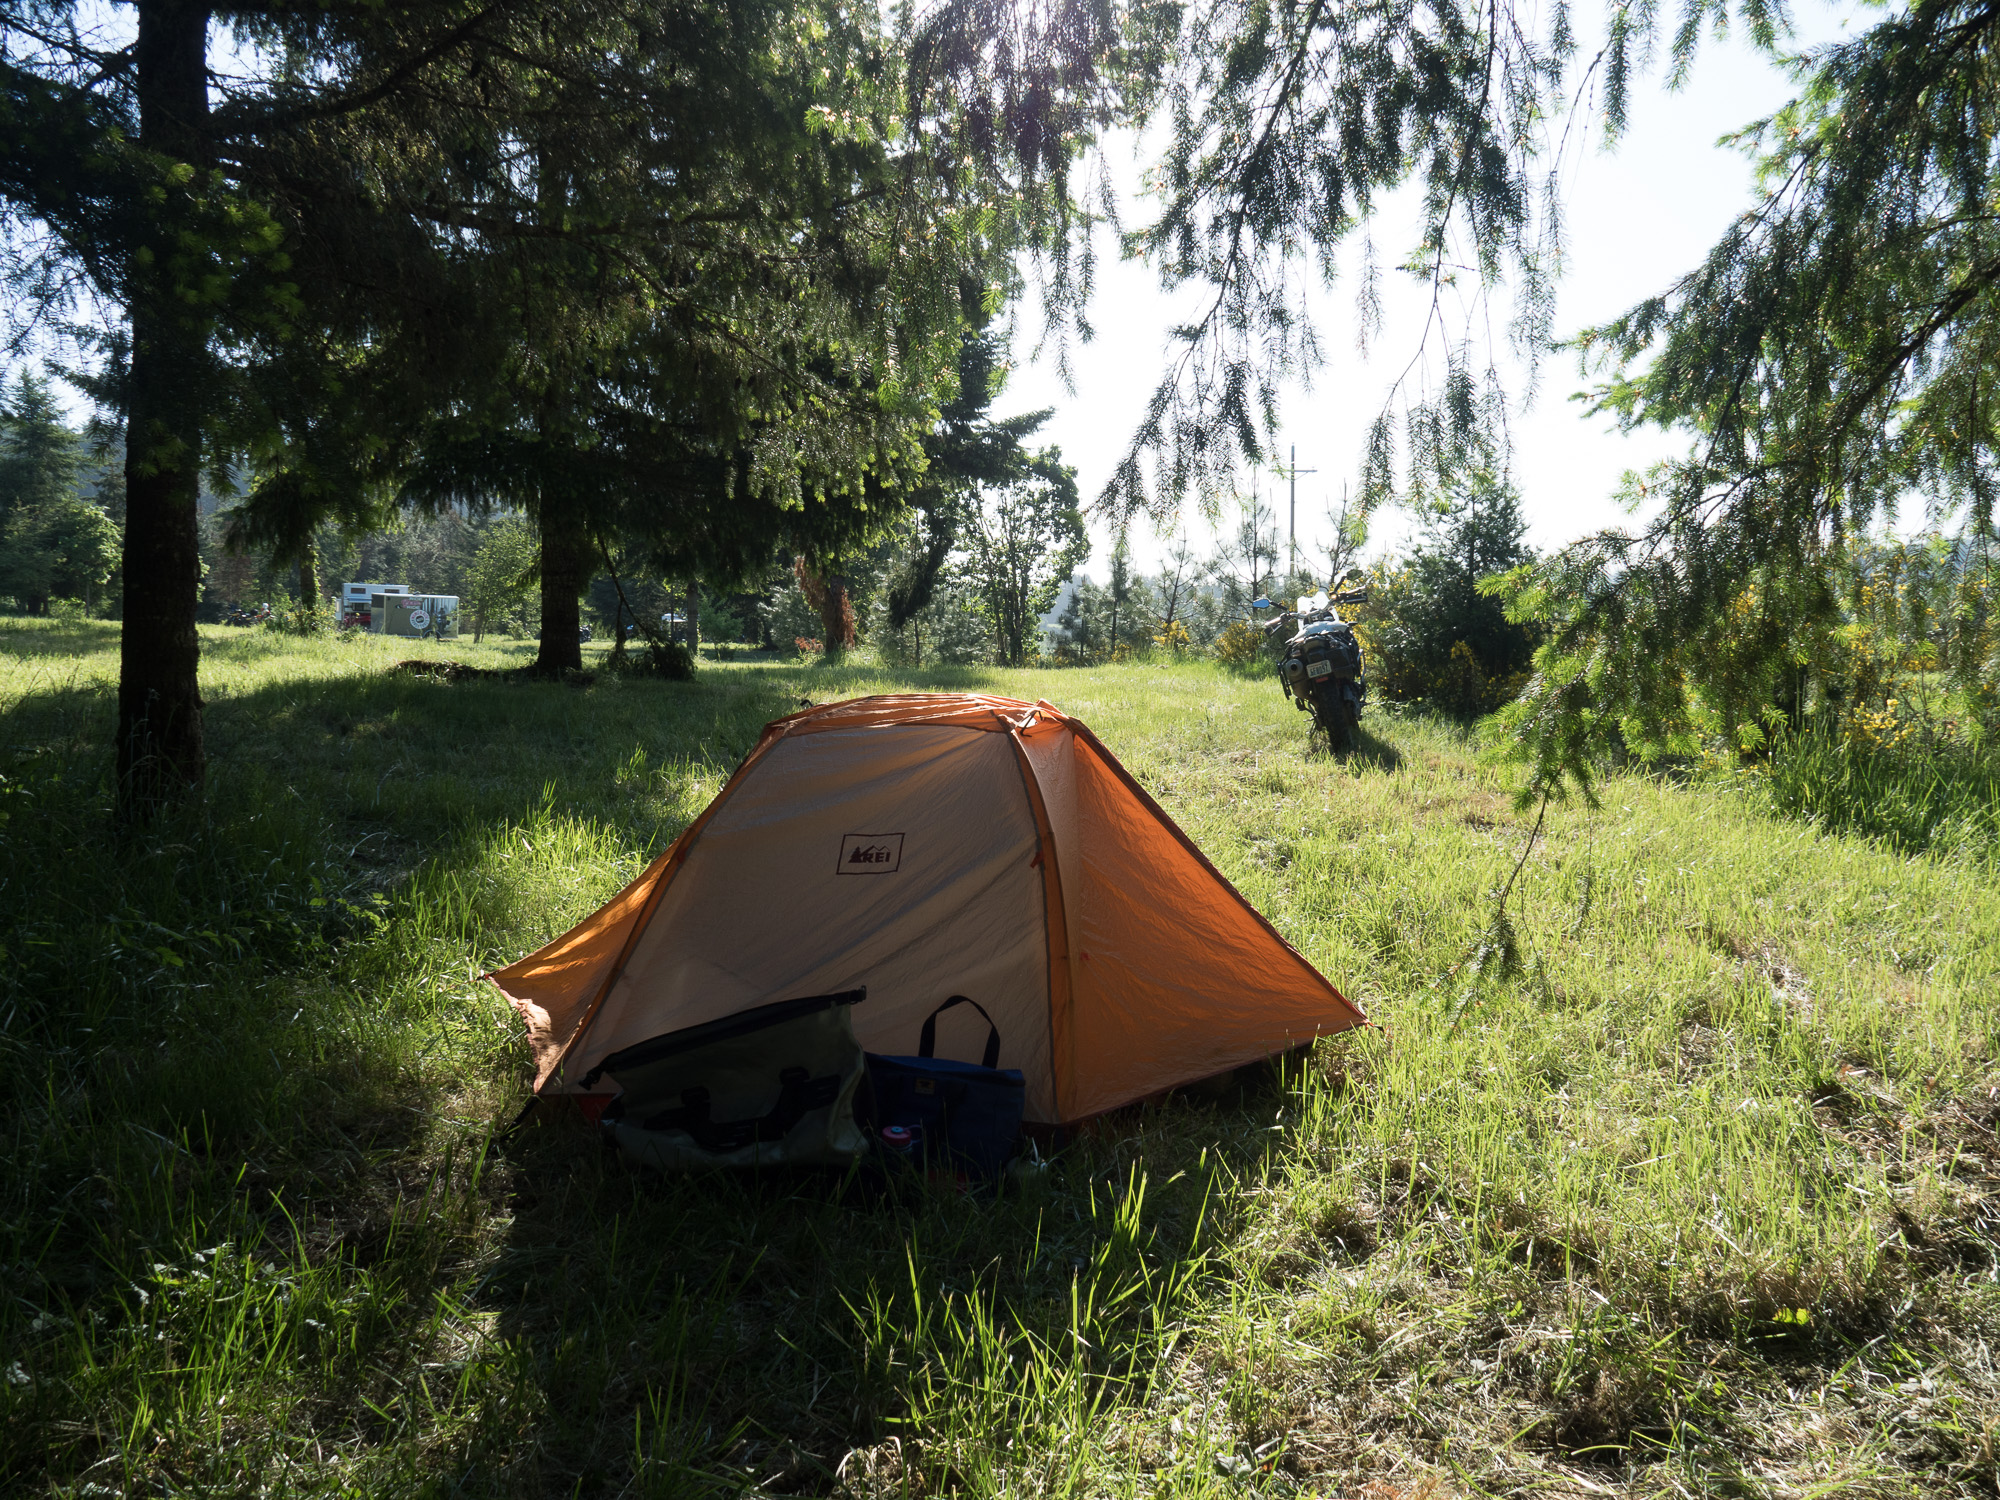 camping at moto training course